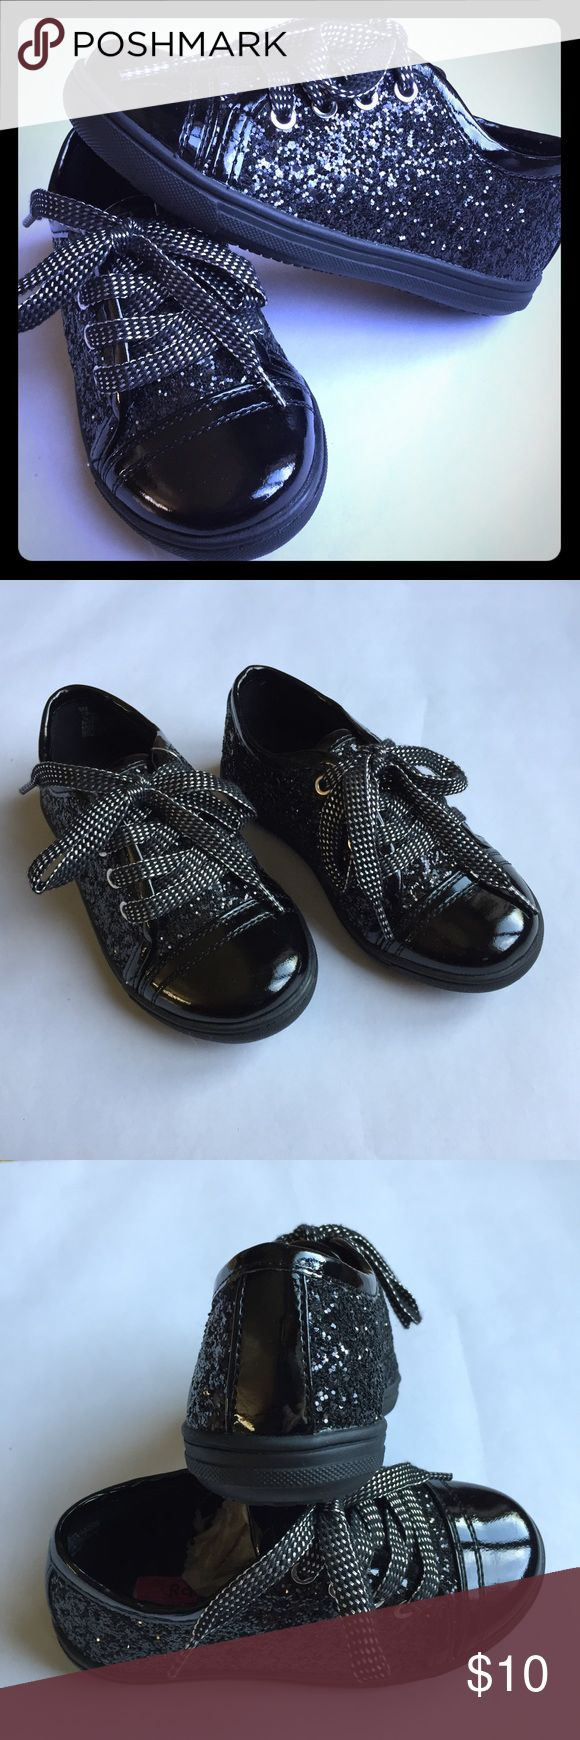 NWT Black Patten Leather & Sparkle lace Up Sneaker Brand new, never worn. Actual tag is missing but paper in shoe and plastic tag attached. Very cute, patten leather look with sparkles. Laces are black and silver glittery. Rachel Shoes brand, toddler girl size 9. Rachel Shoes Shoes Sneakers